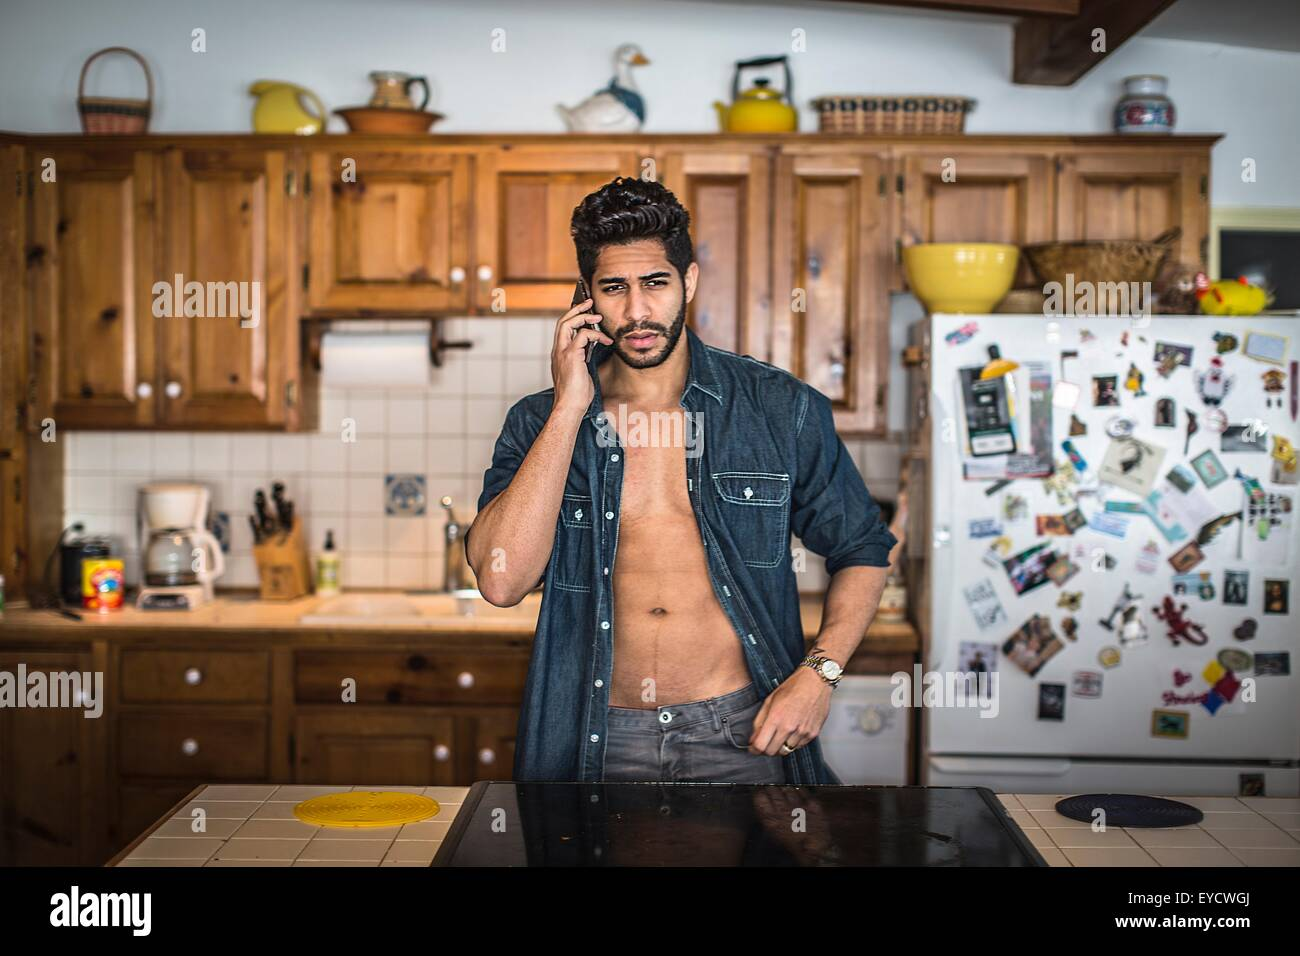 Young man on cell phone in kitchen Stock Photo